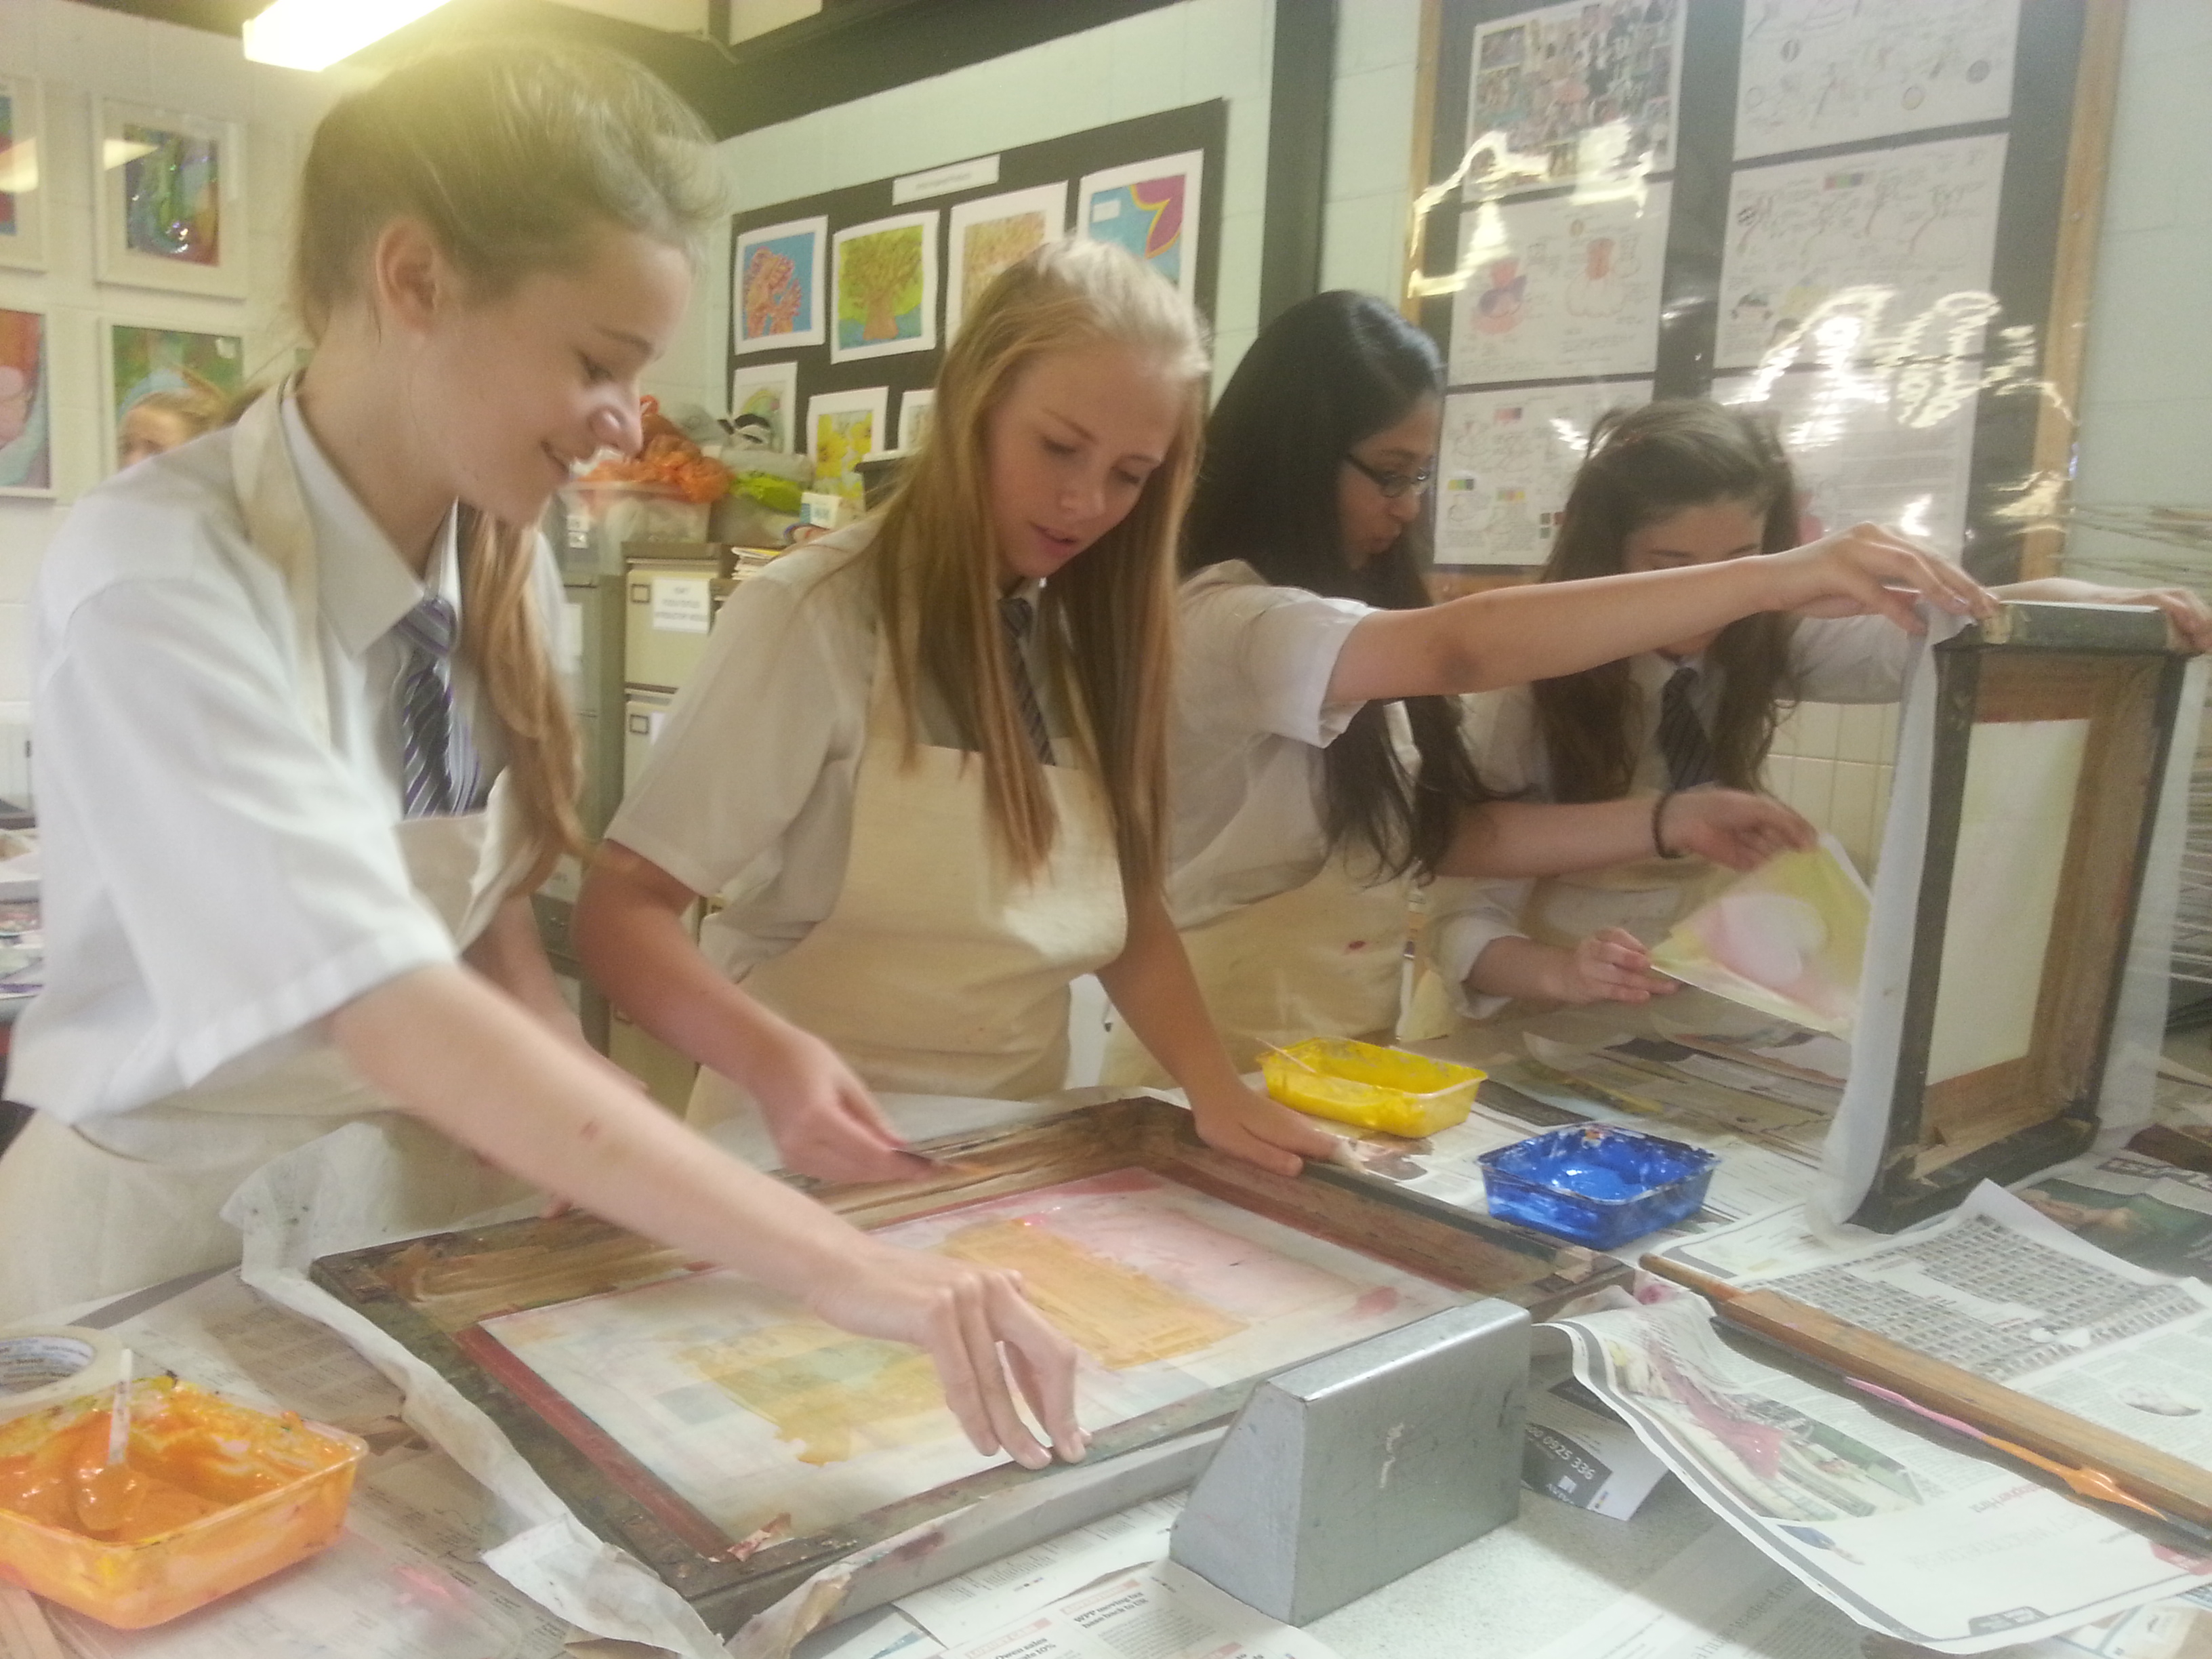 Workshops & Courses with Debbie Tomkies - Introduction to Screenprinting with GCSE students